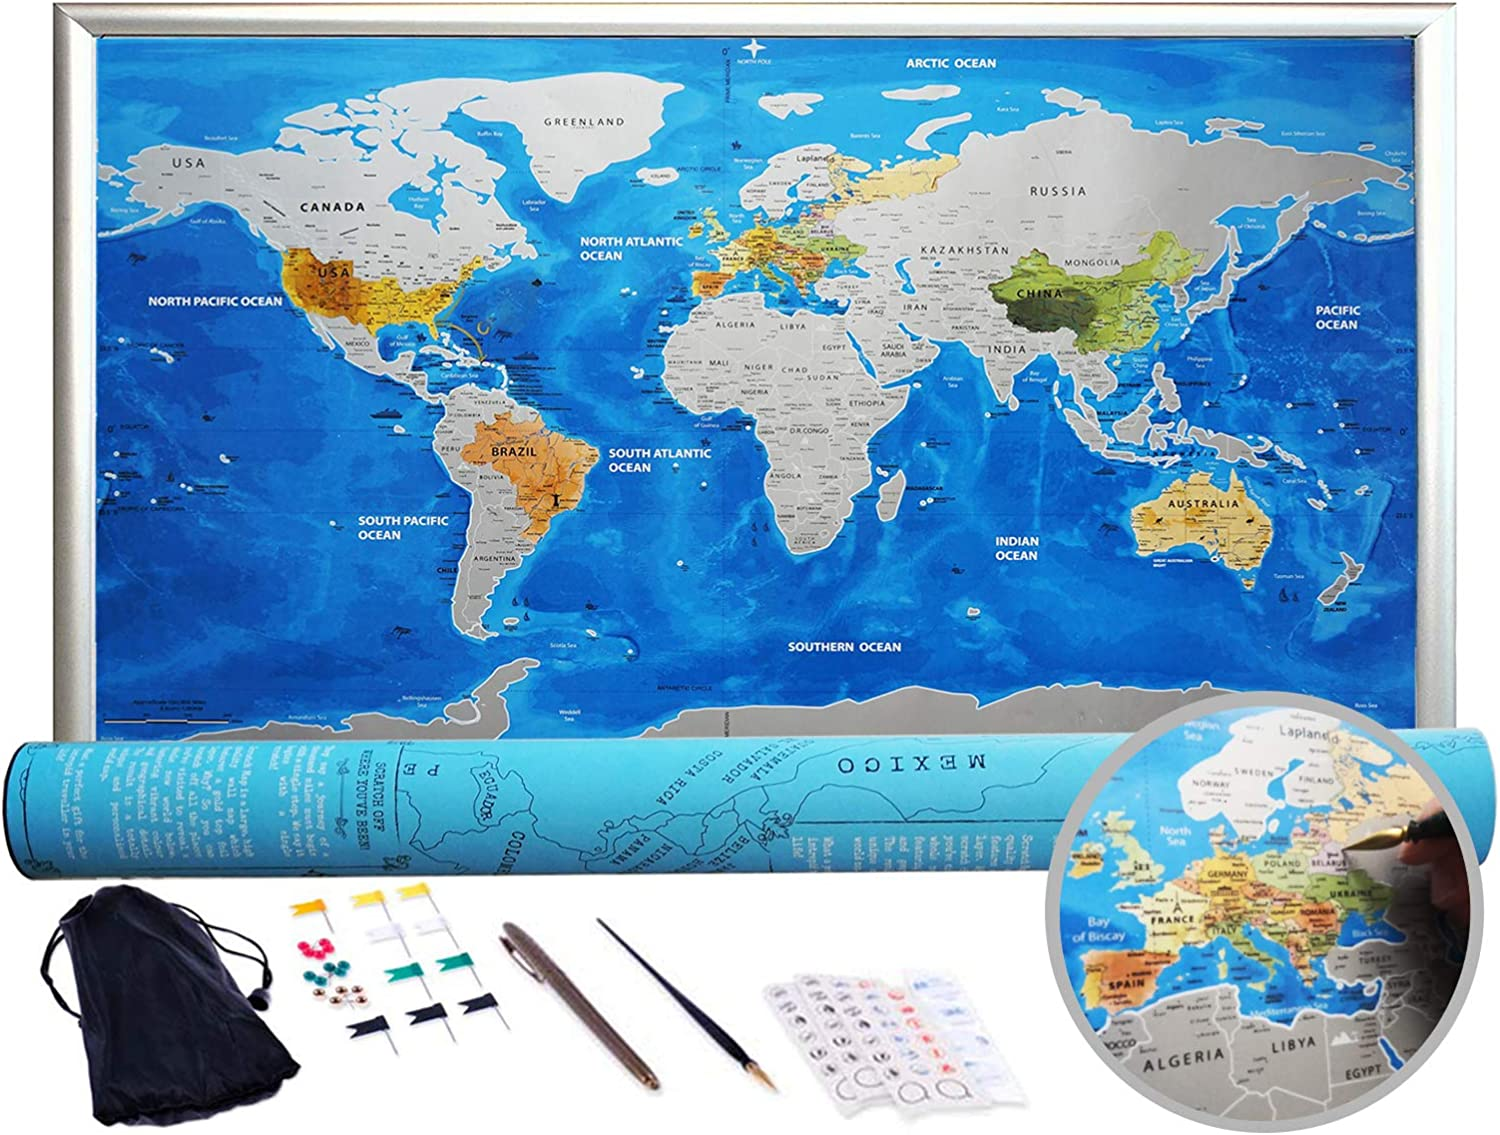 Paper Traveling Scratch Map World Edition Convenient Marking Toys Gift NEW